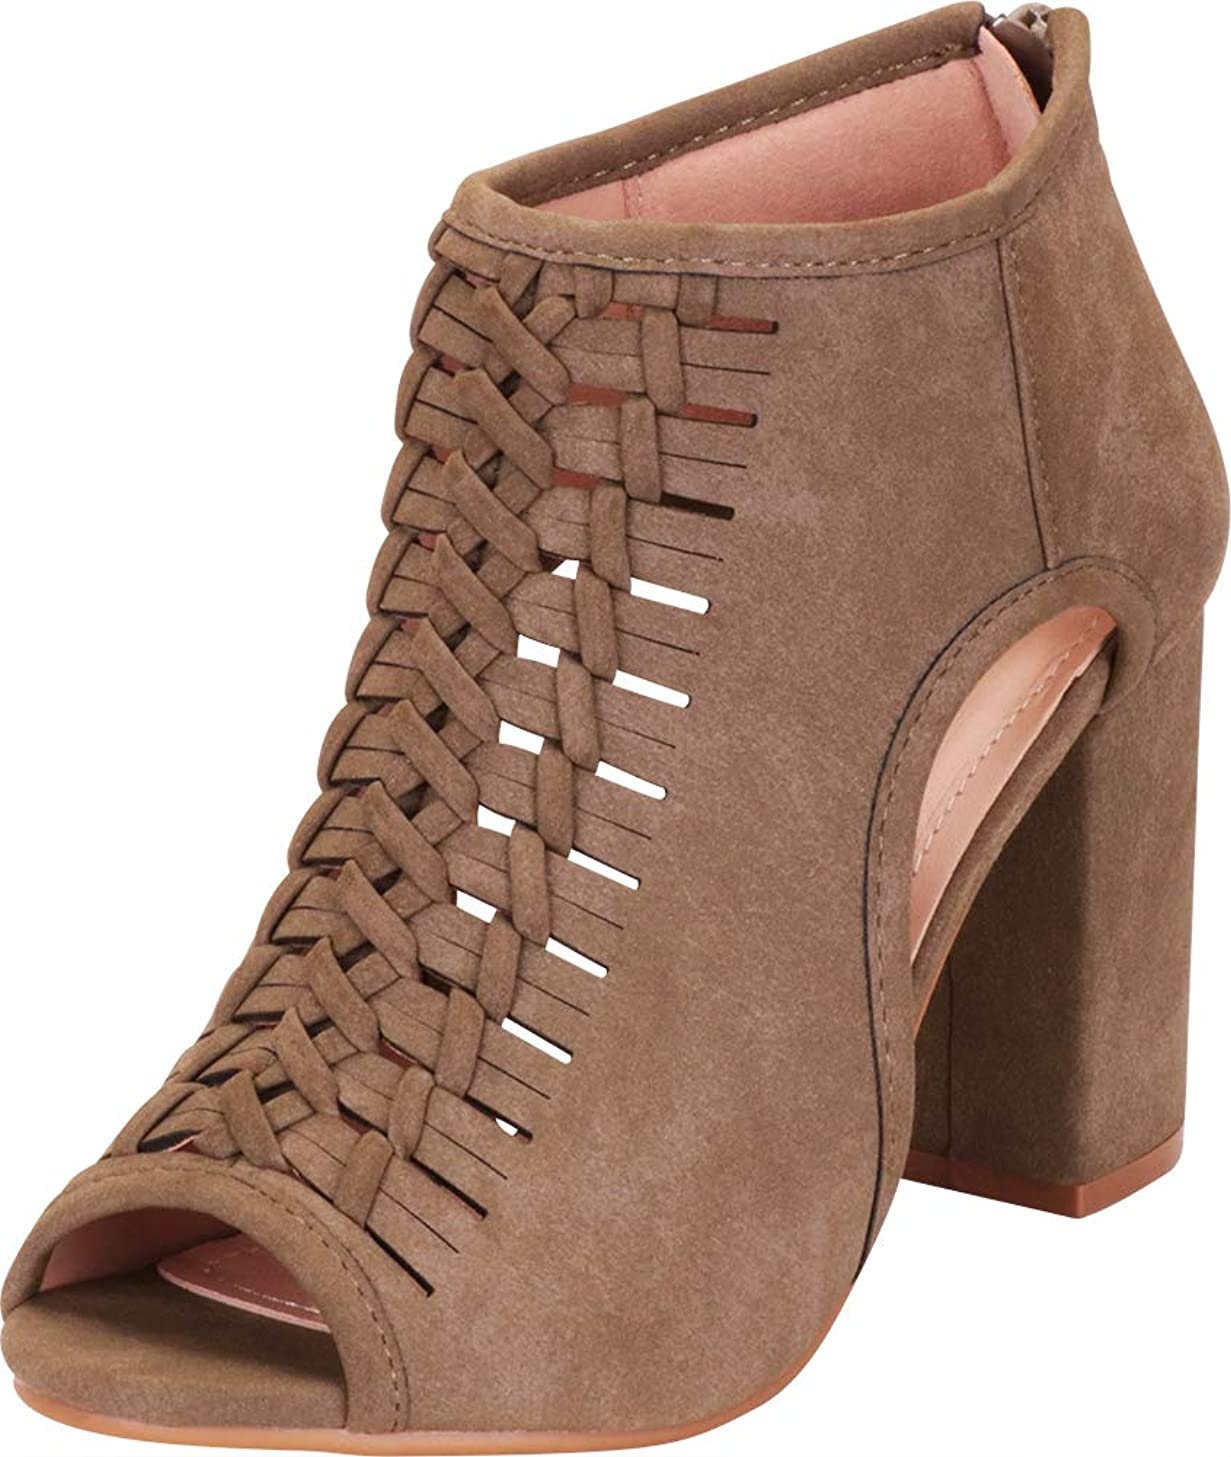 Cambridge Select Women's Open Toe Laser Cutout Whipstitch Block High Heel Ankle Bootie